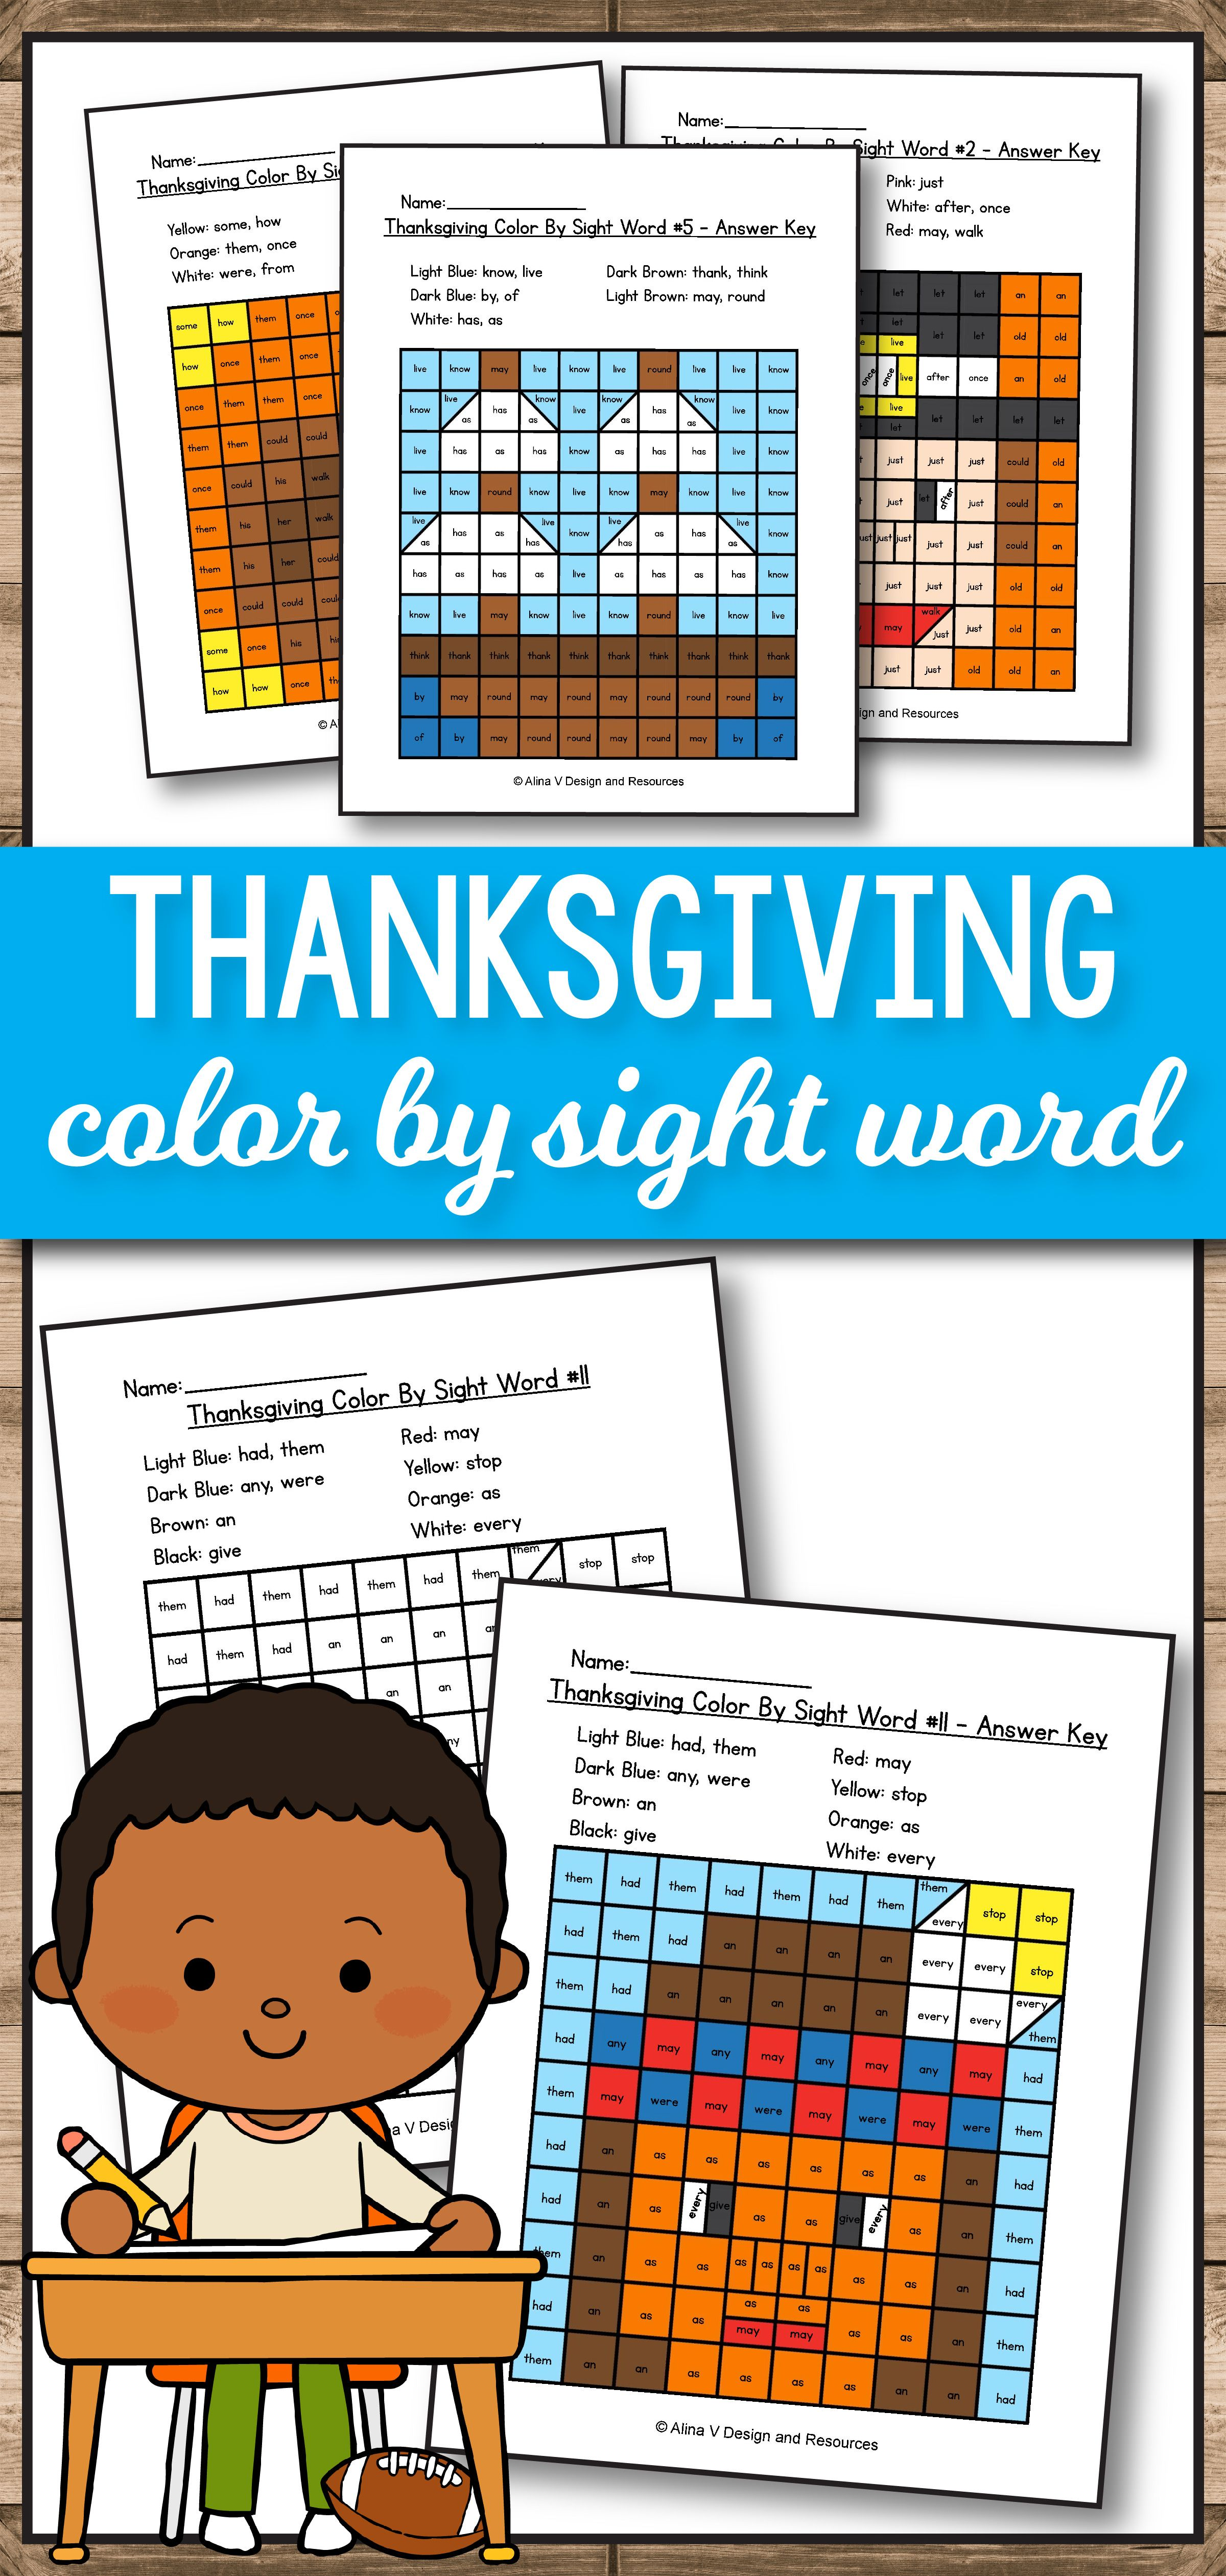 Thanksgiving Activities for 1st grade - Thanksgiving Coloring Pages ...